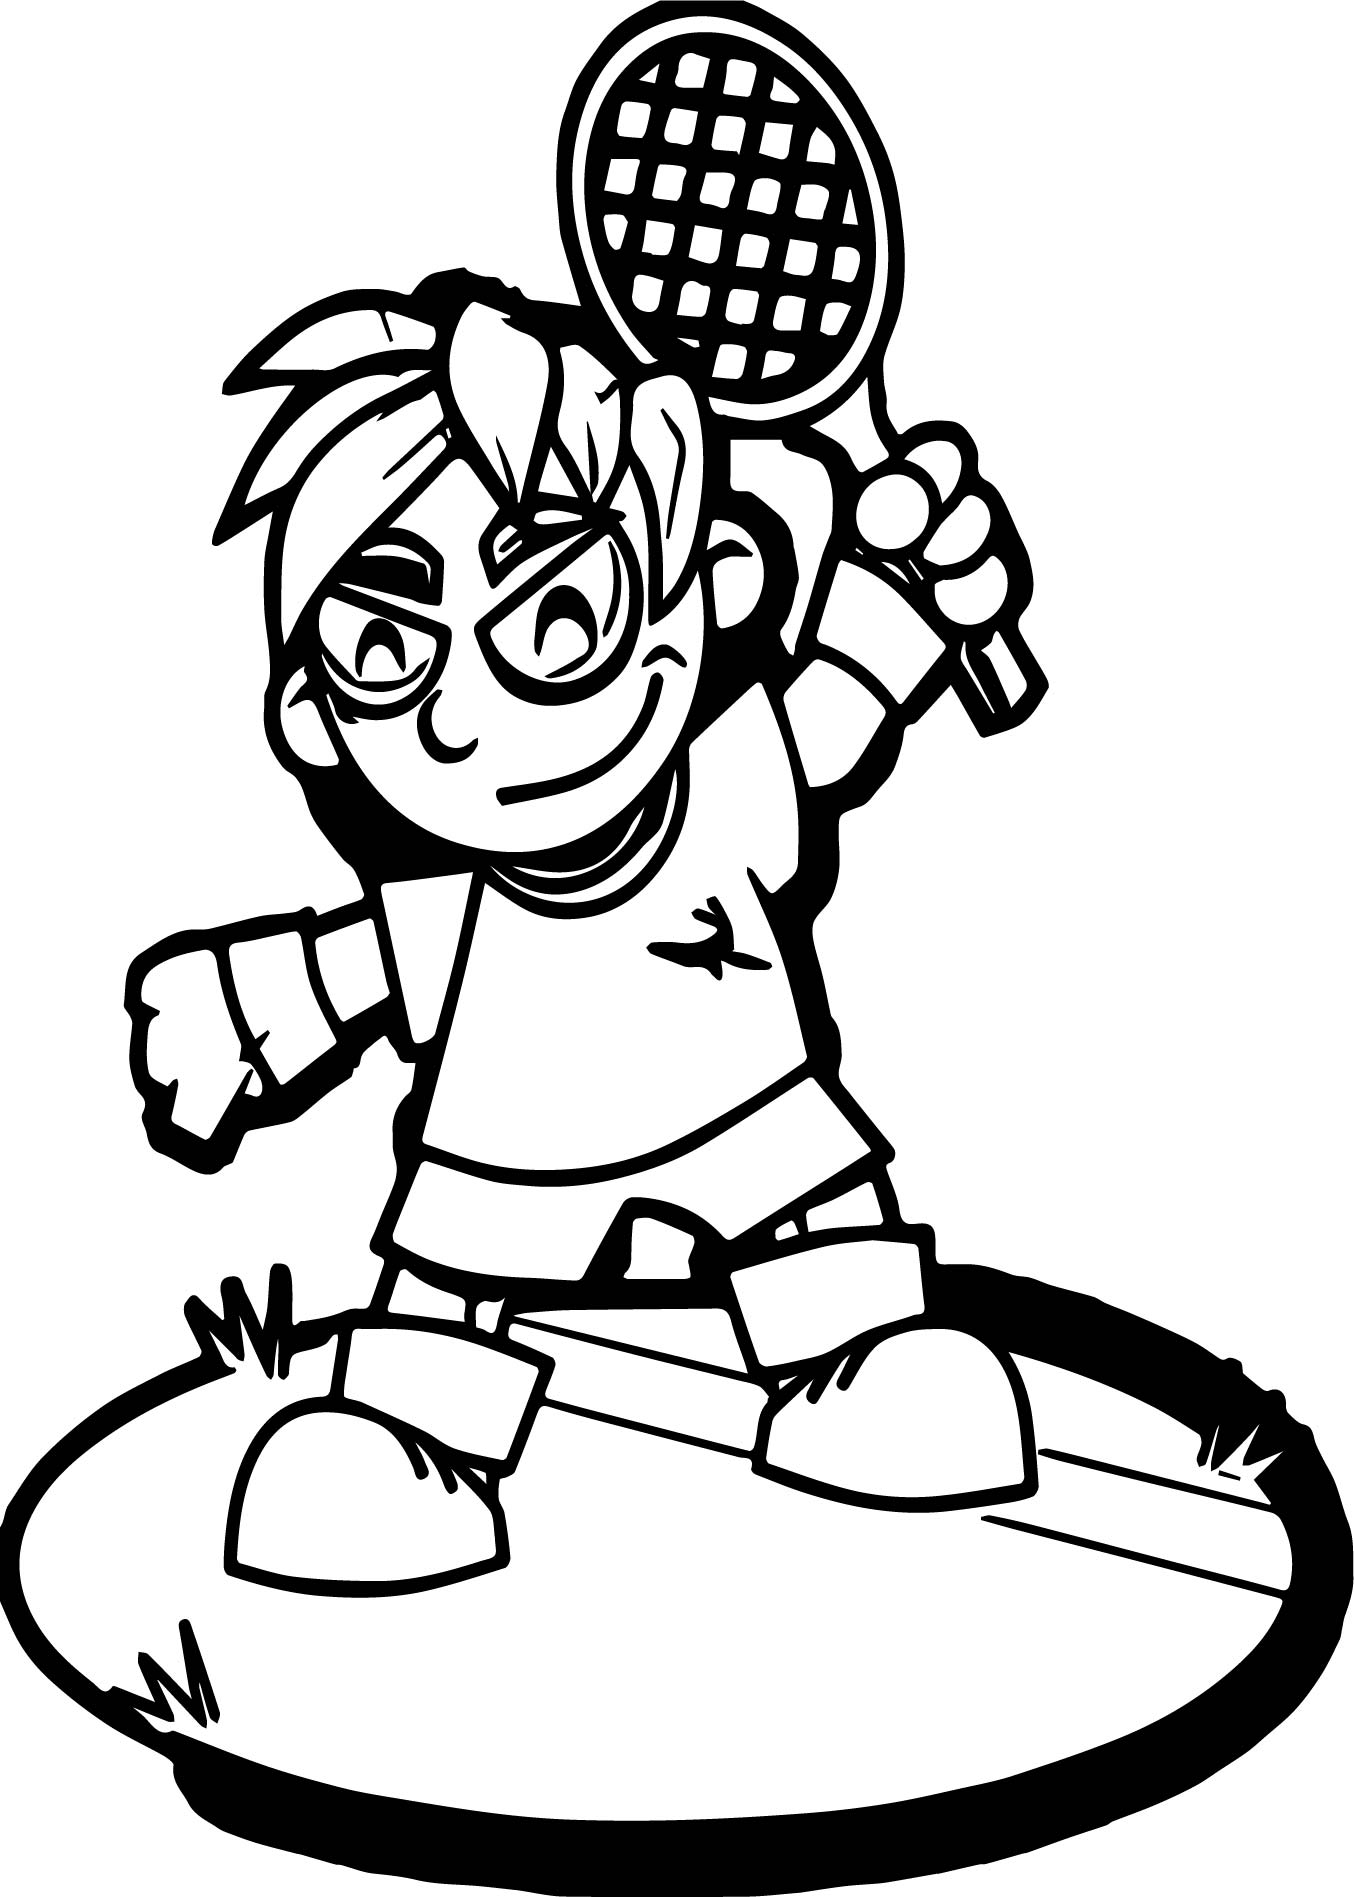 Tennis Free To Use Coloring Page